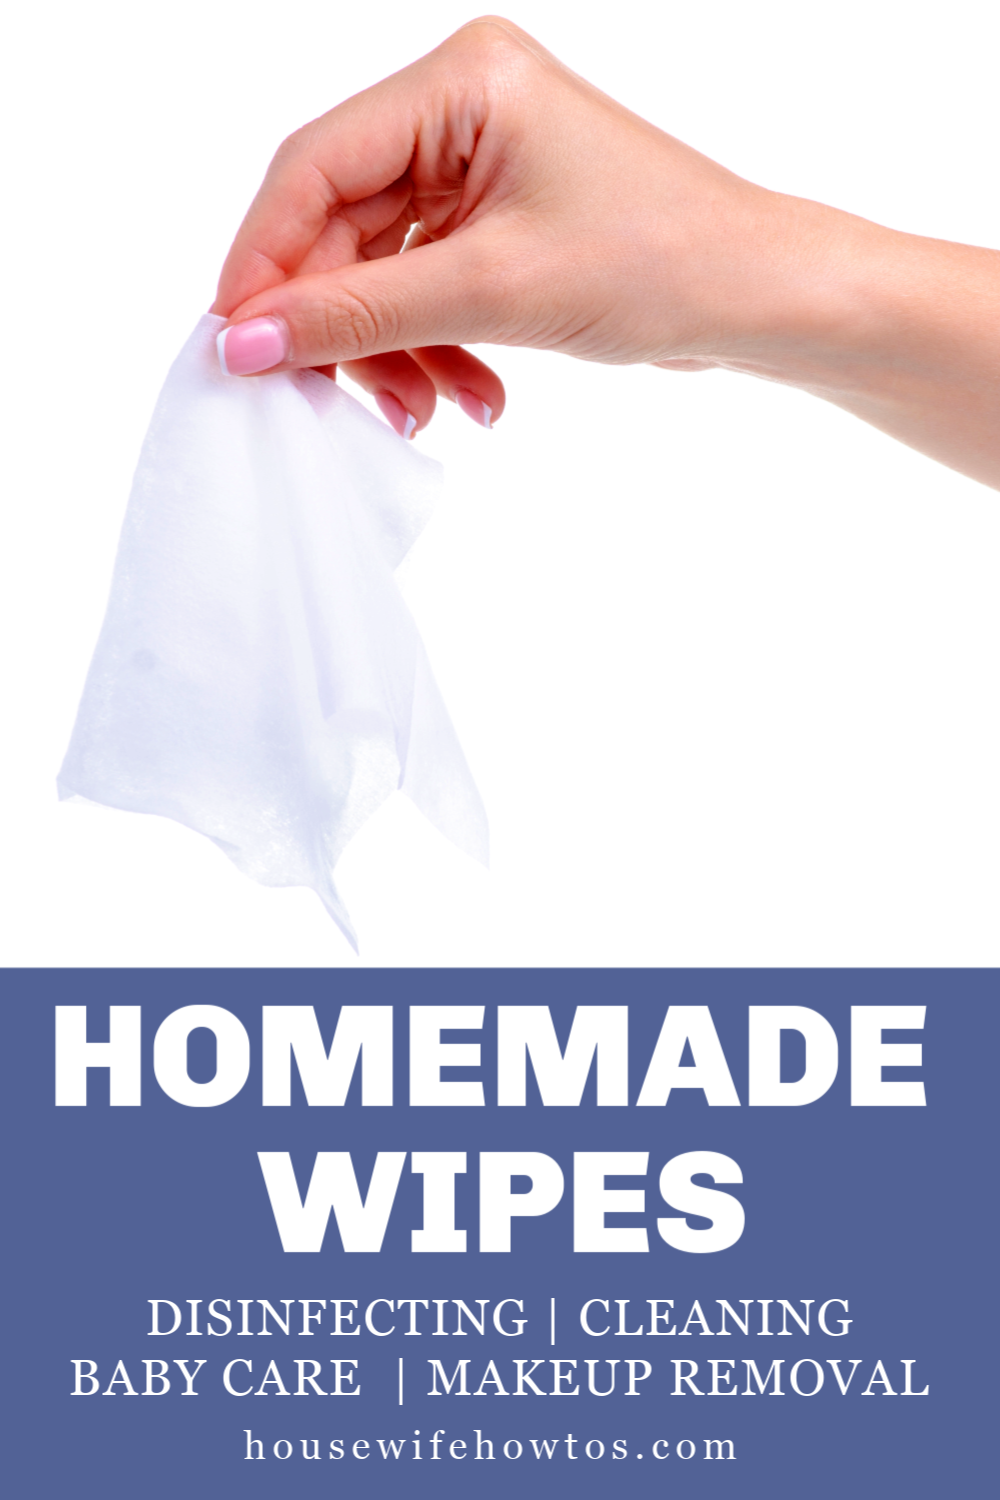 EFFECTIVE, fast and easy recipes to make homemade